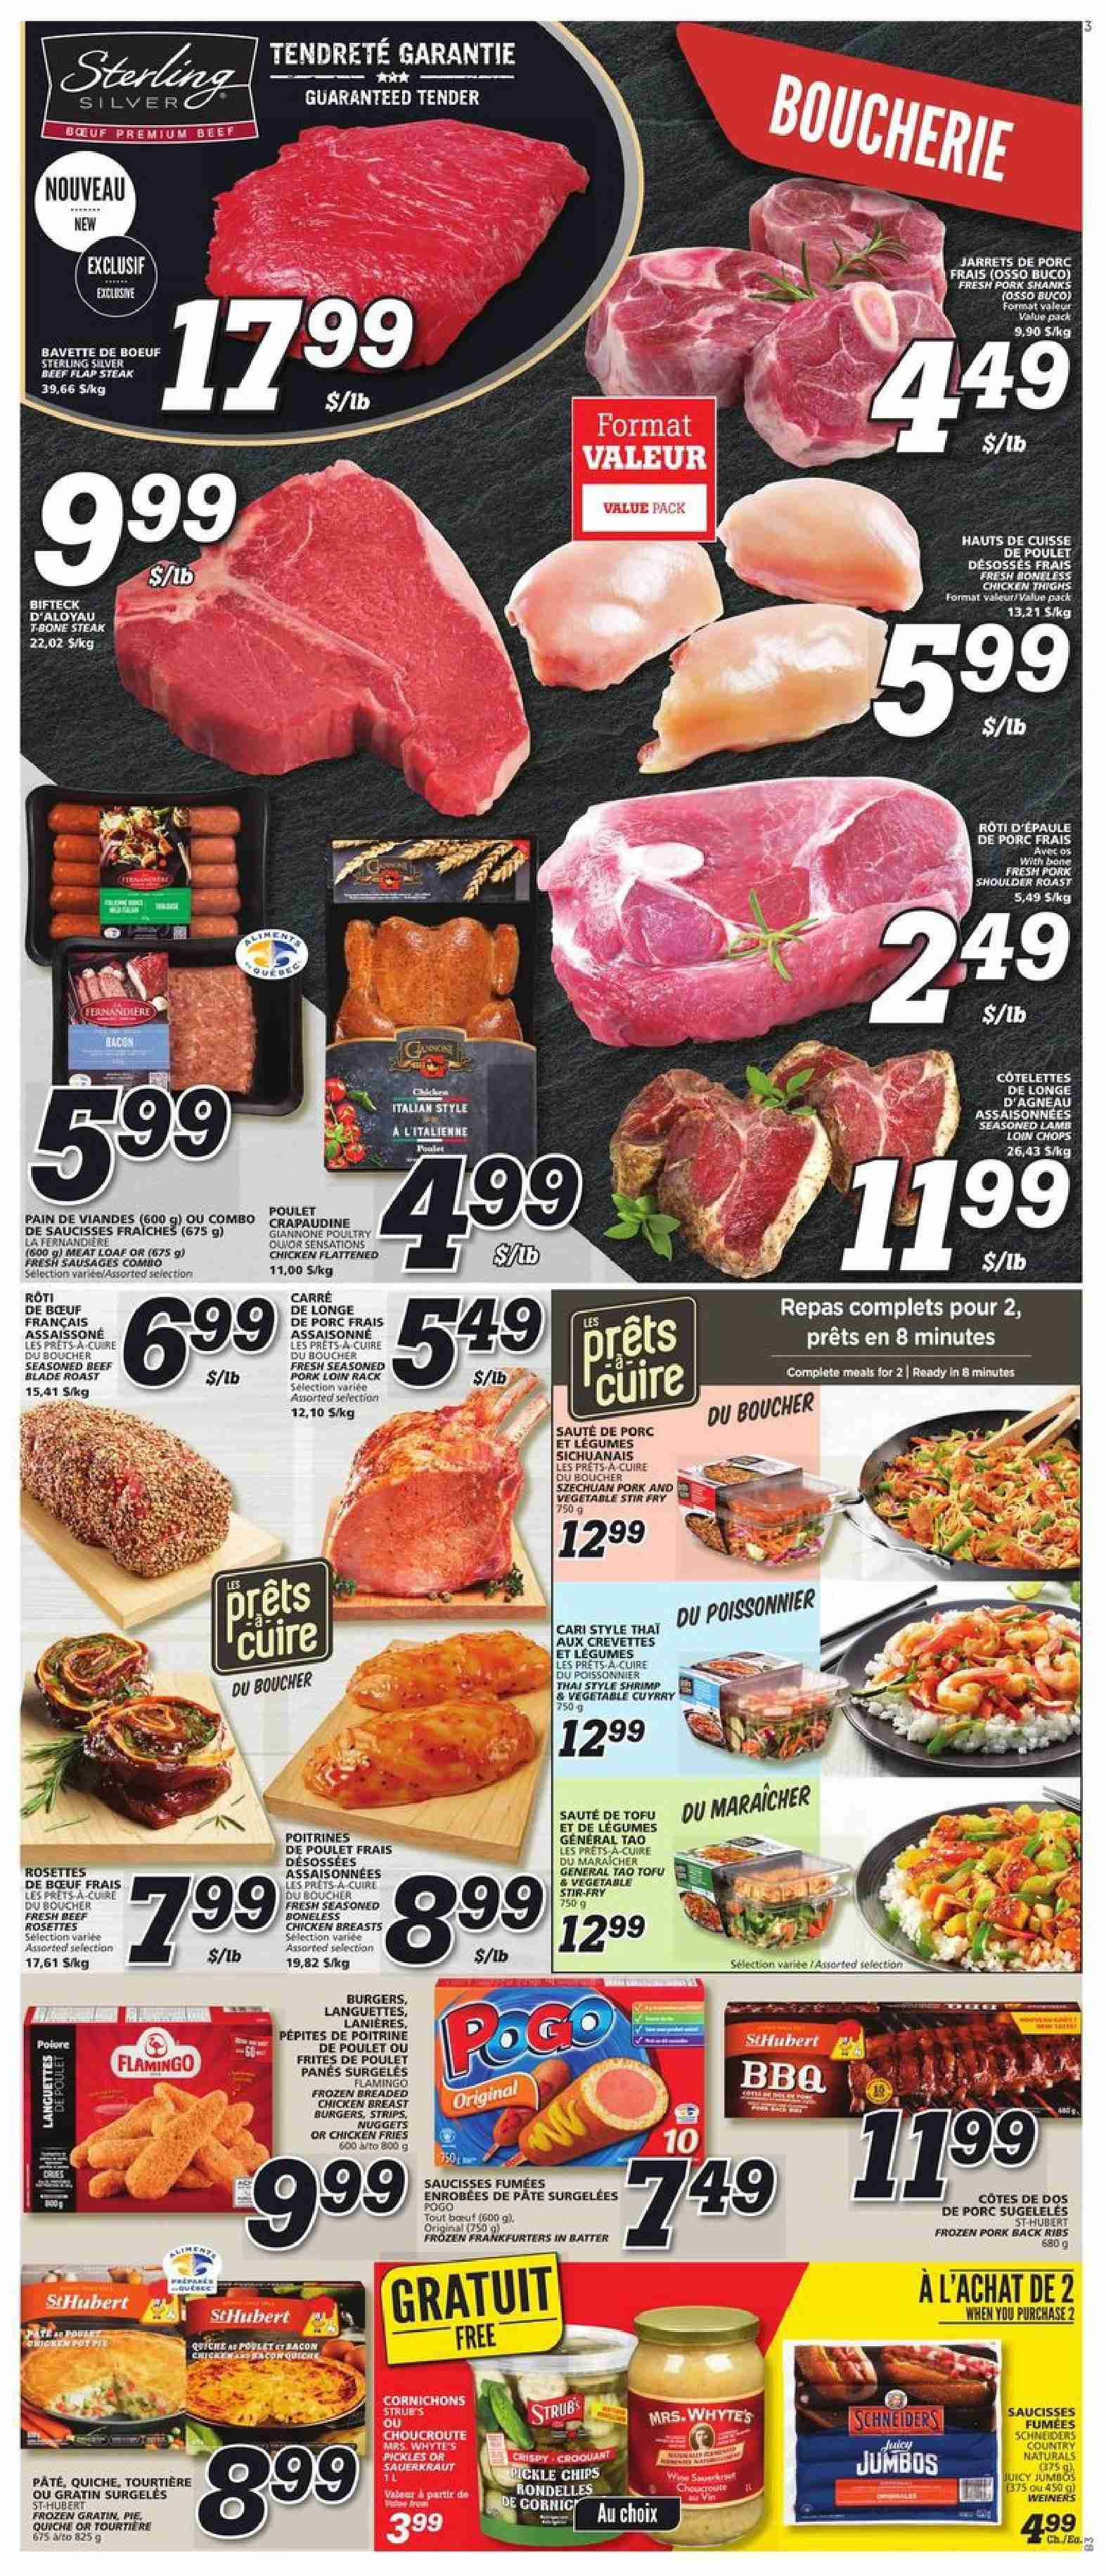 IGA Flyer  - October 18, 2018 - October 24, 2018. Page 3.